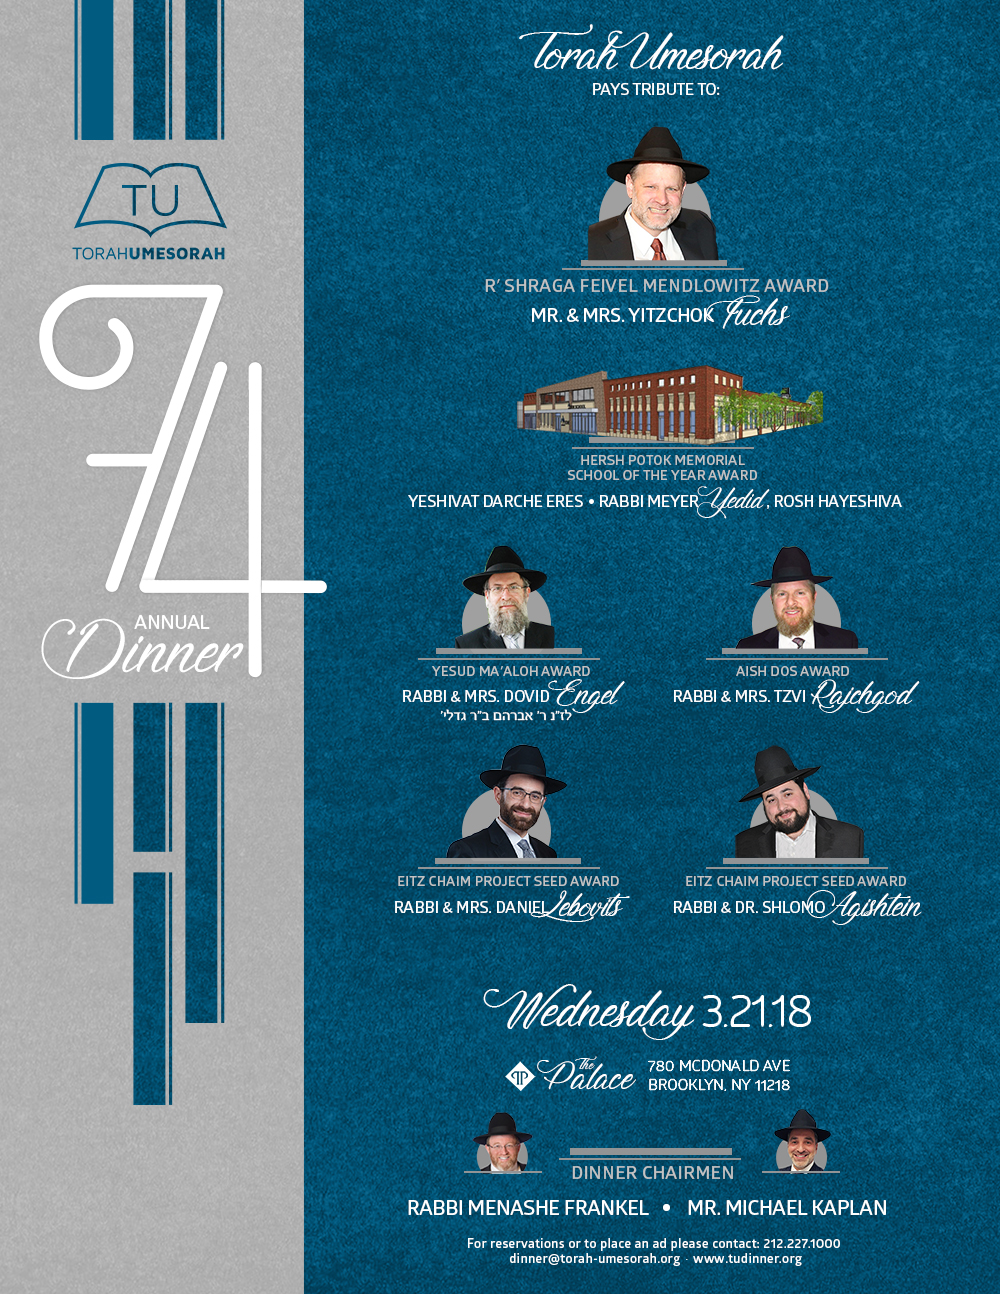 74th Anniversary Celebration Dinner